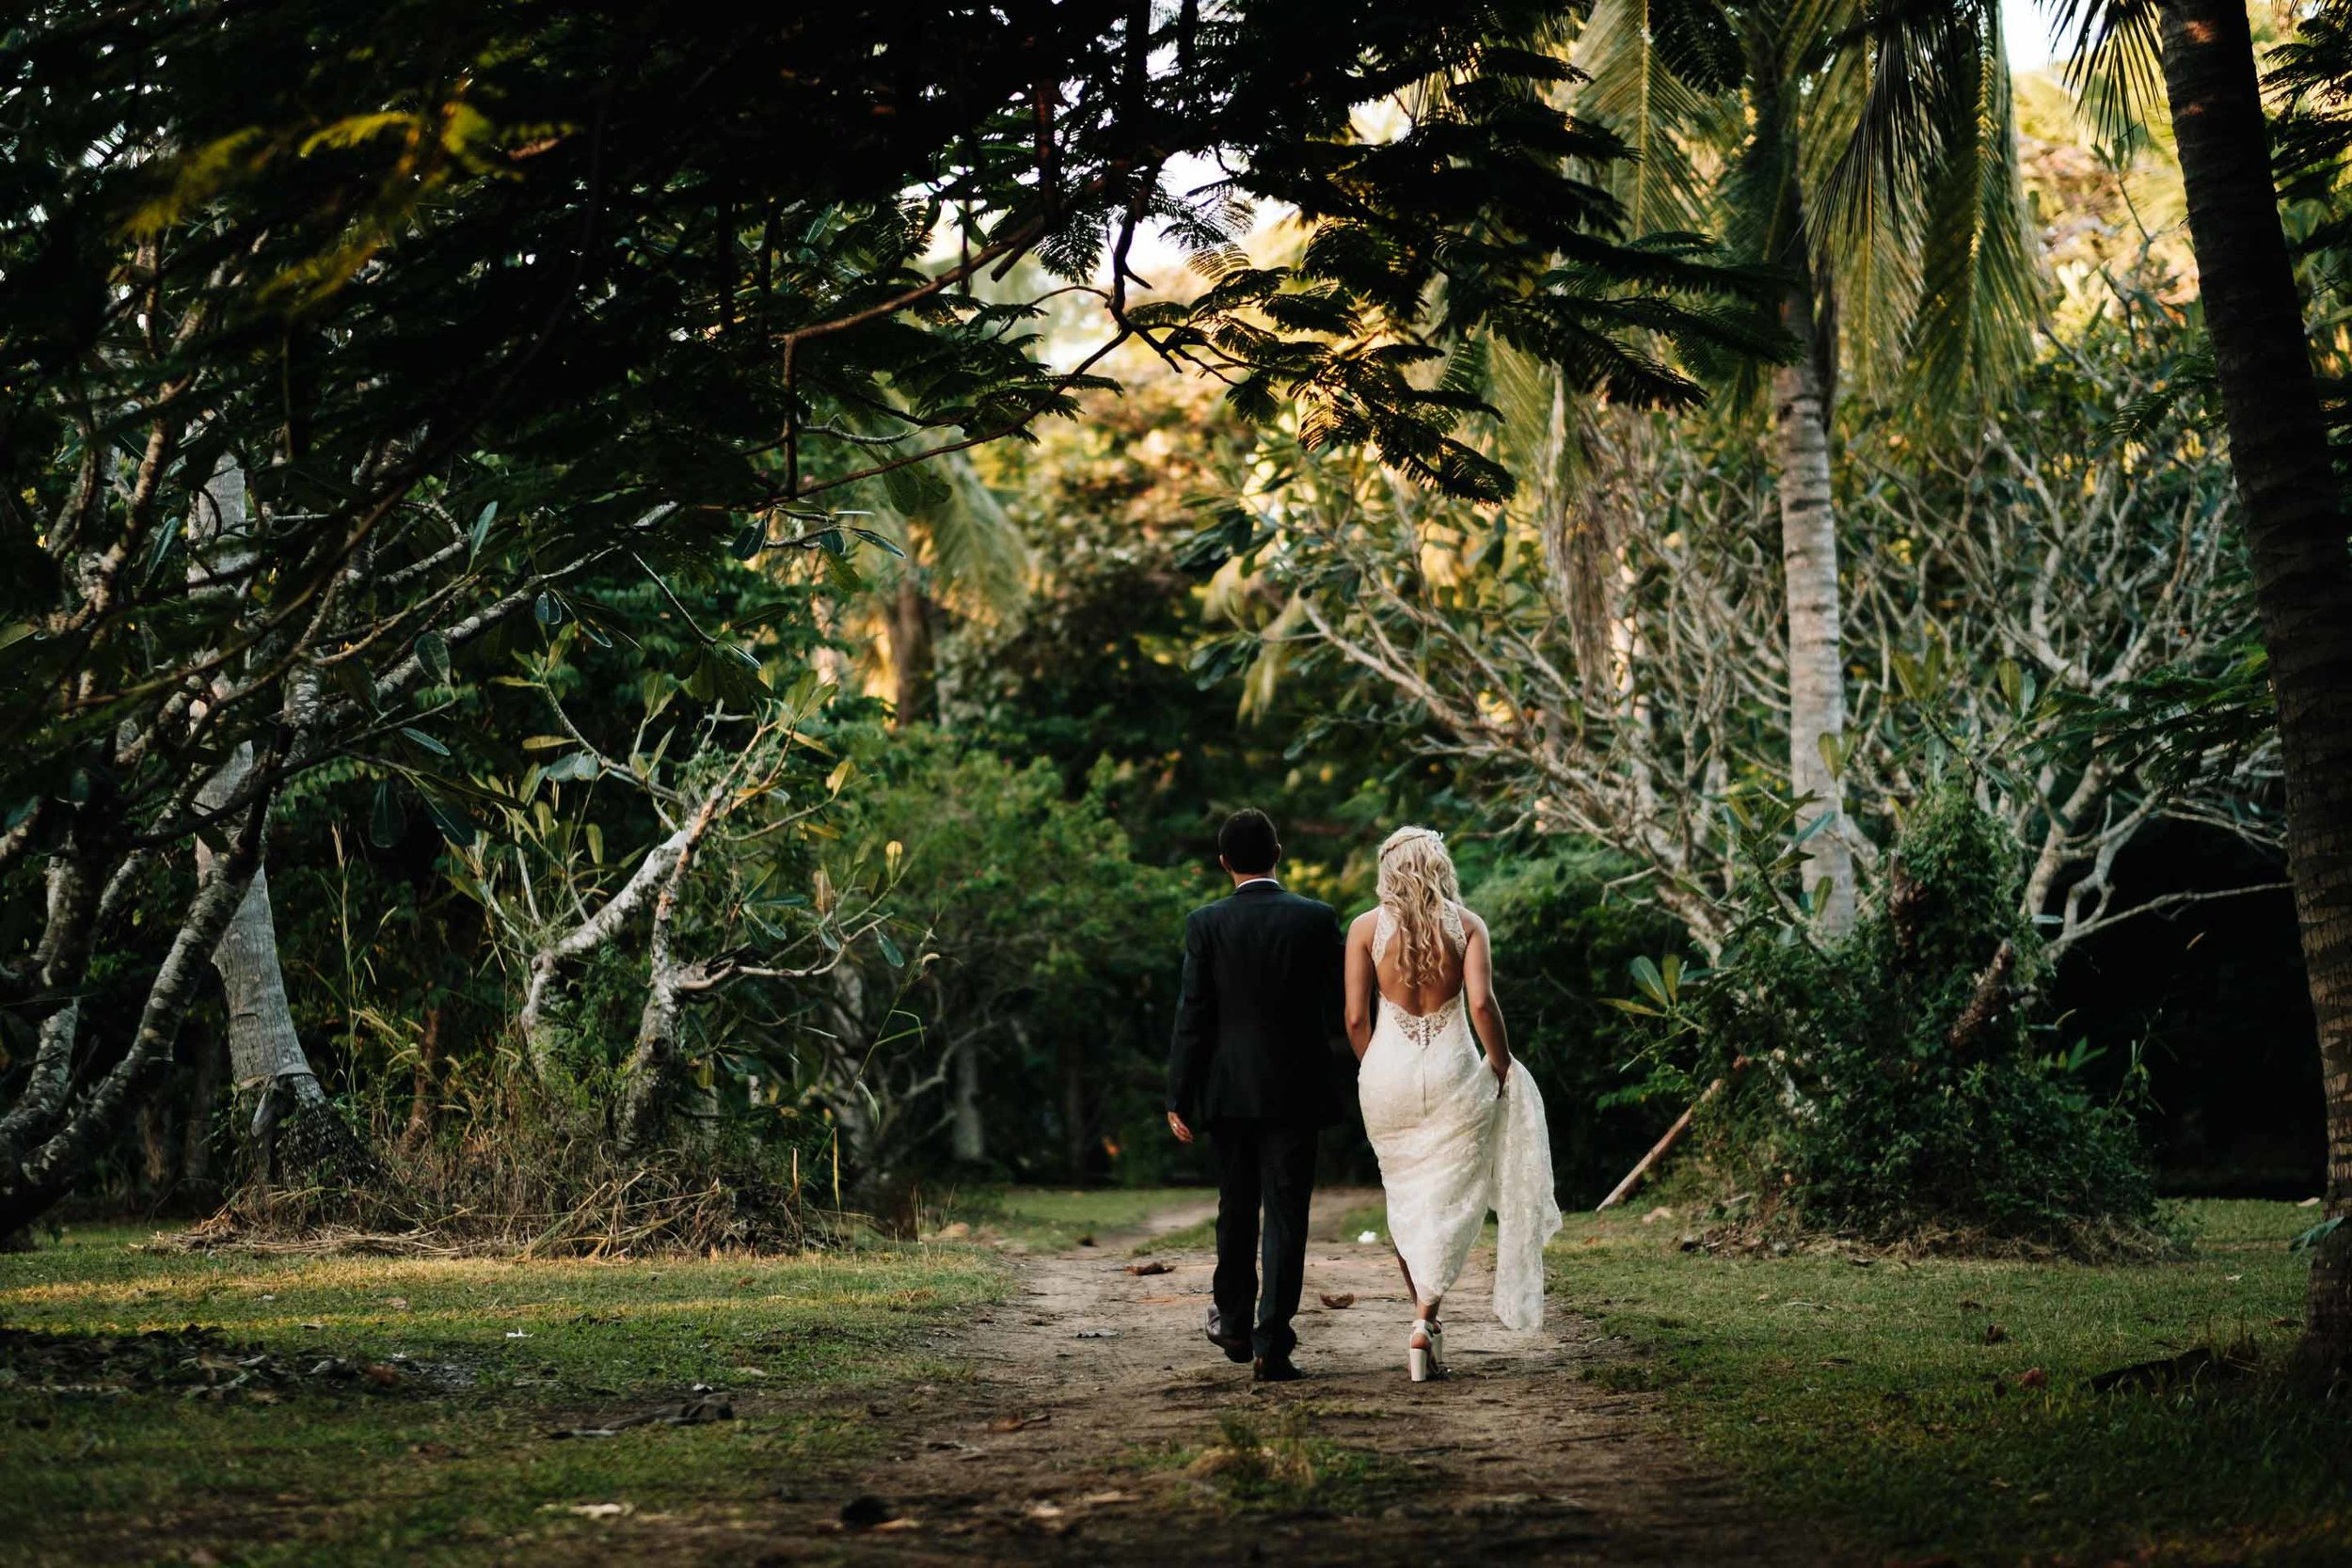 the bride and groom walking away together hand in hand under trees on a sandy dirt road